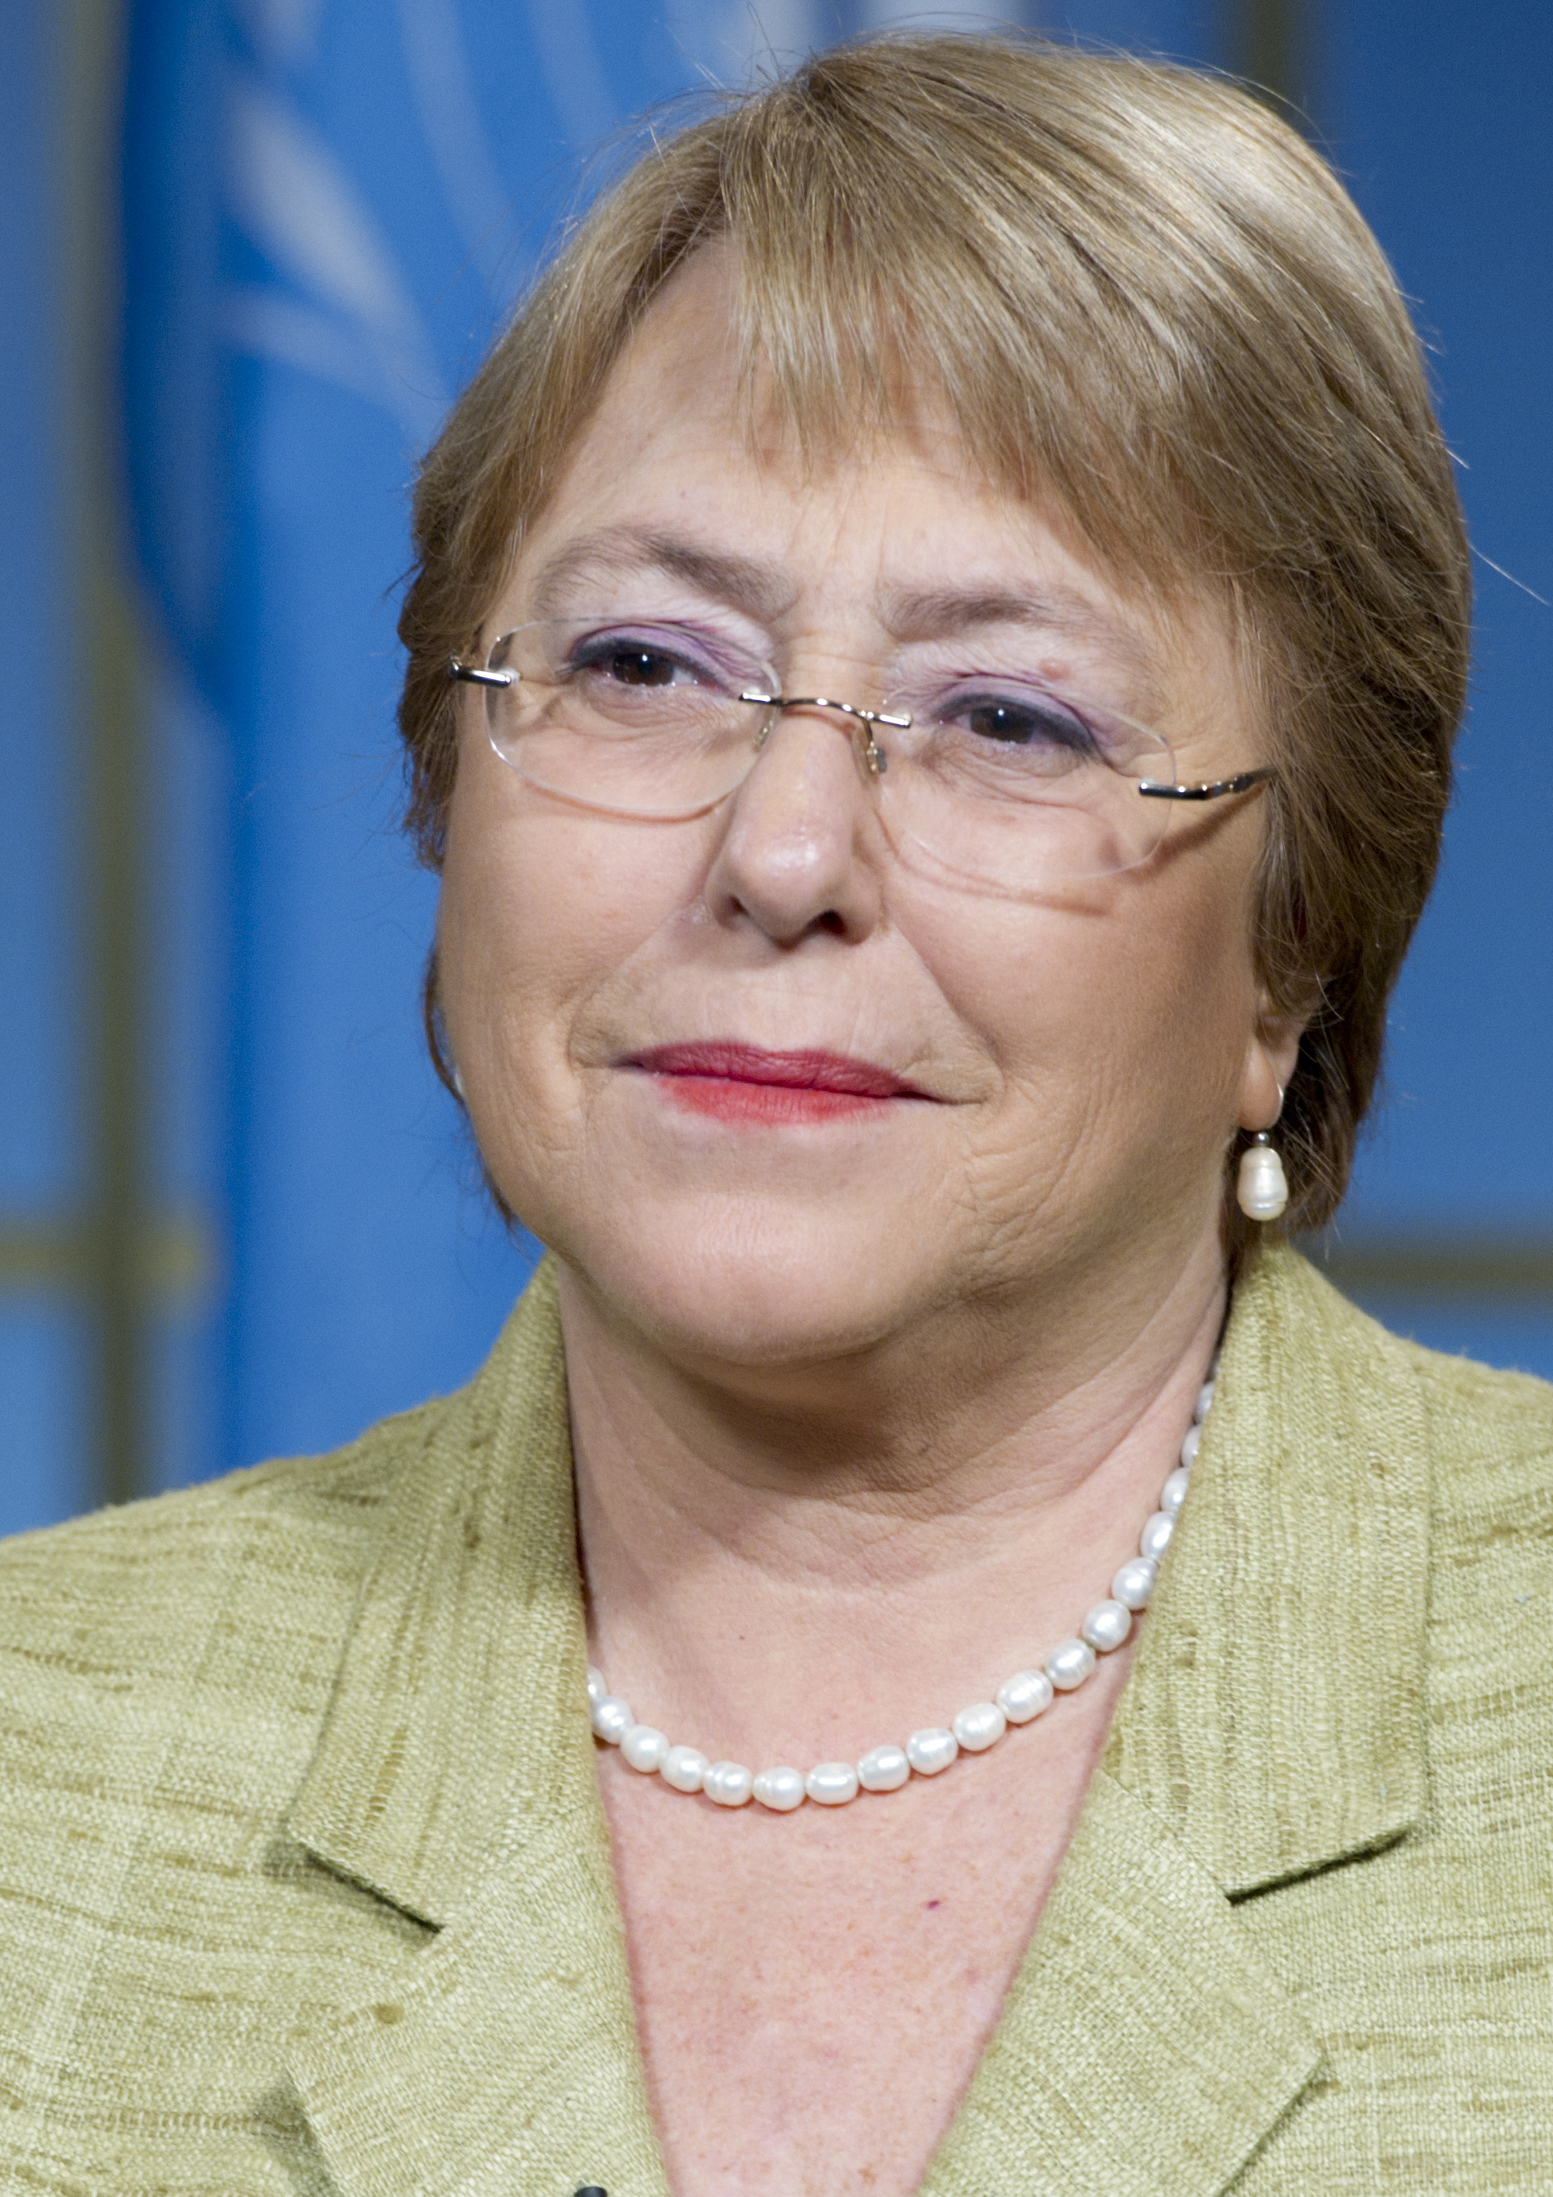 Verónica Michelle Bachelet Jeria High Commissioner for Human Rights